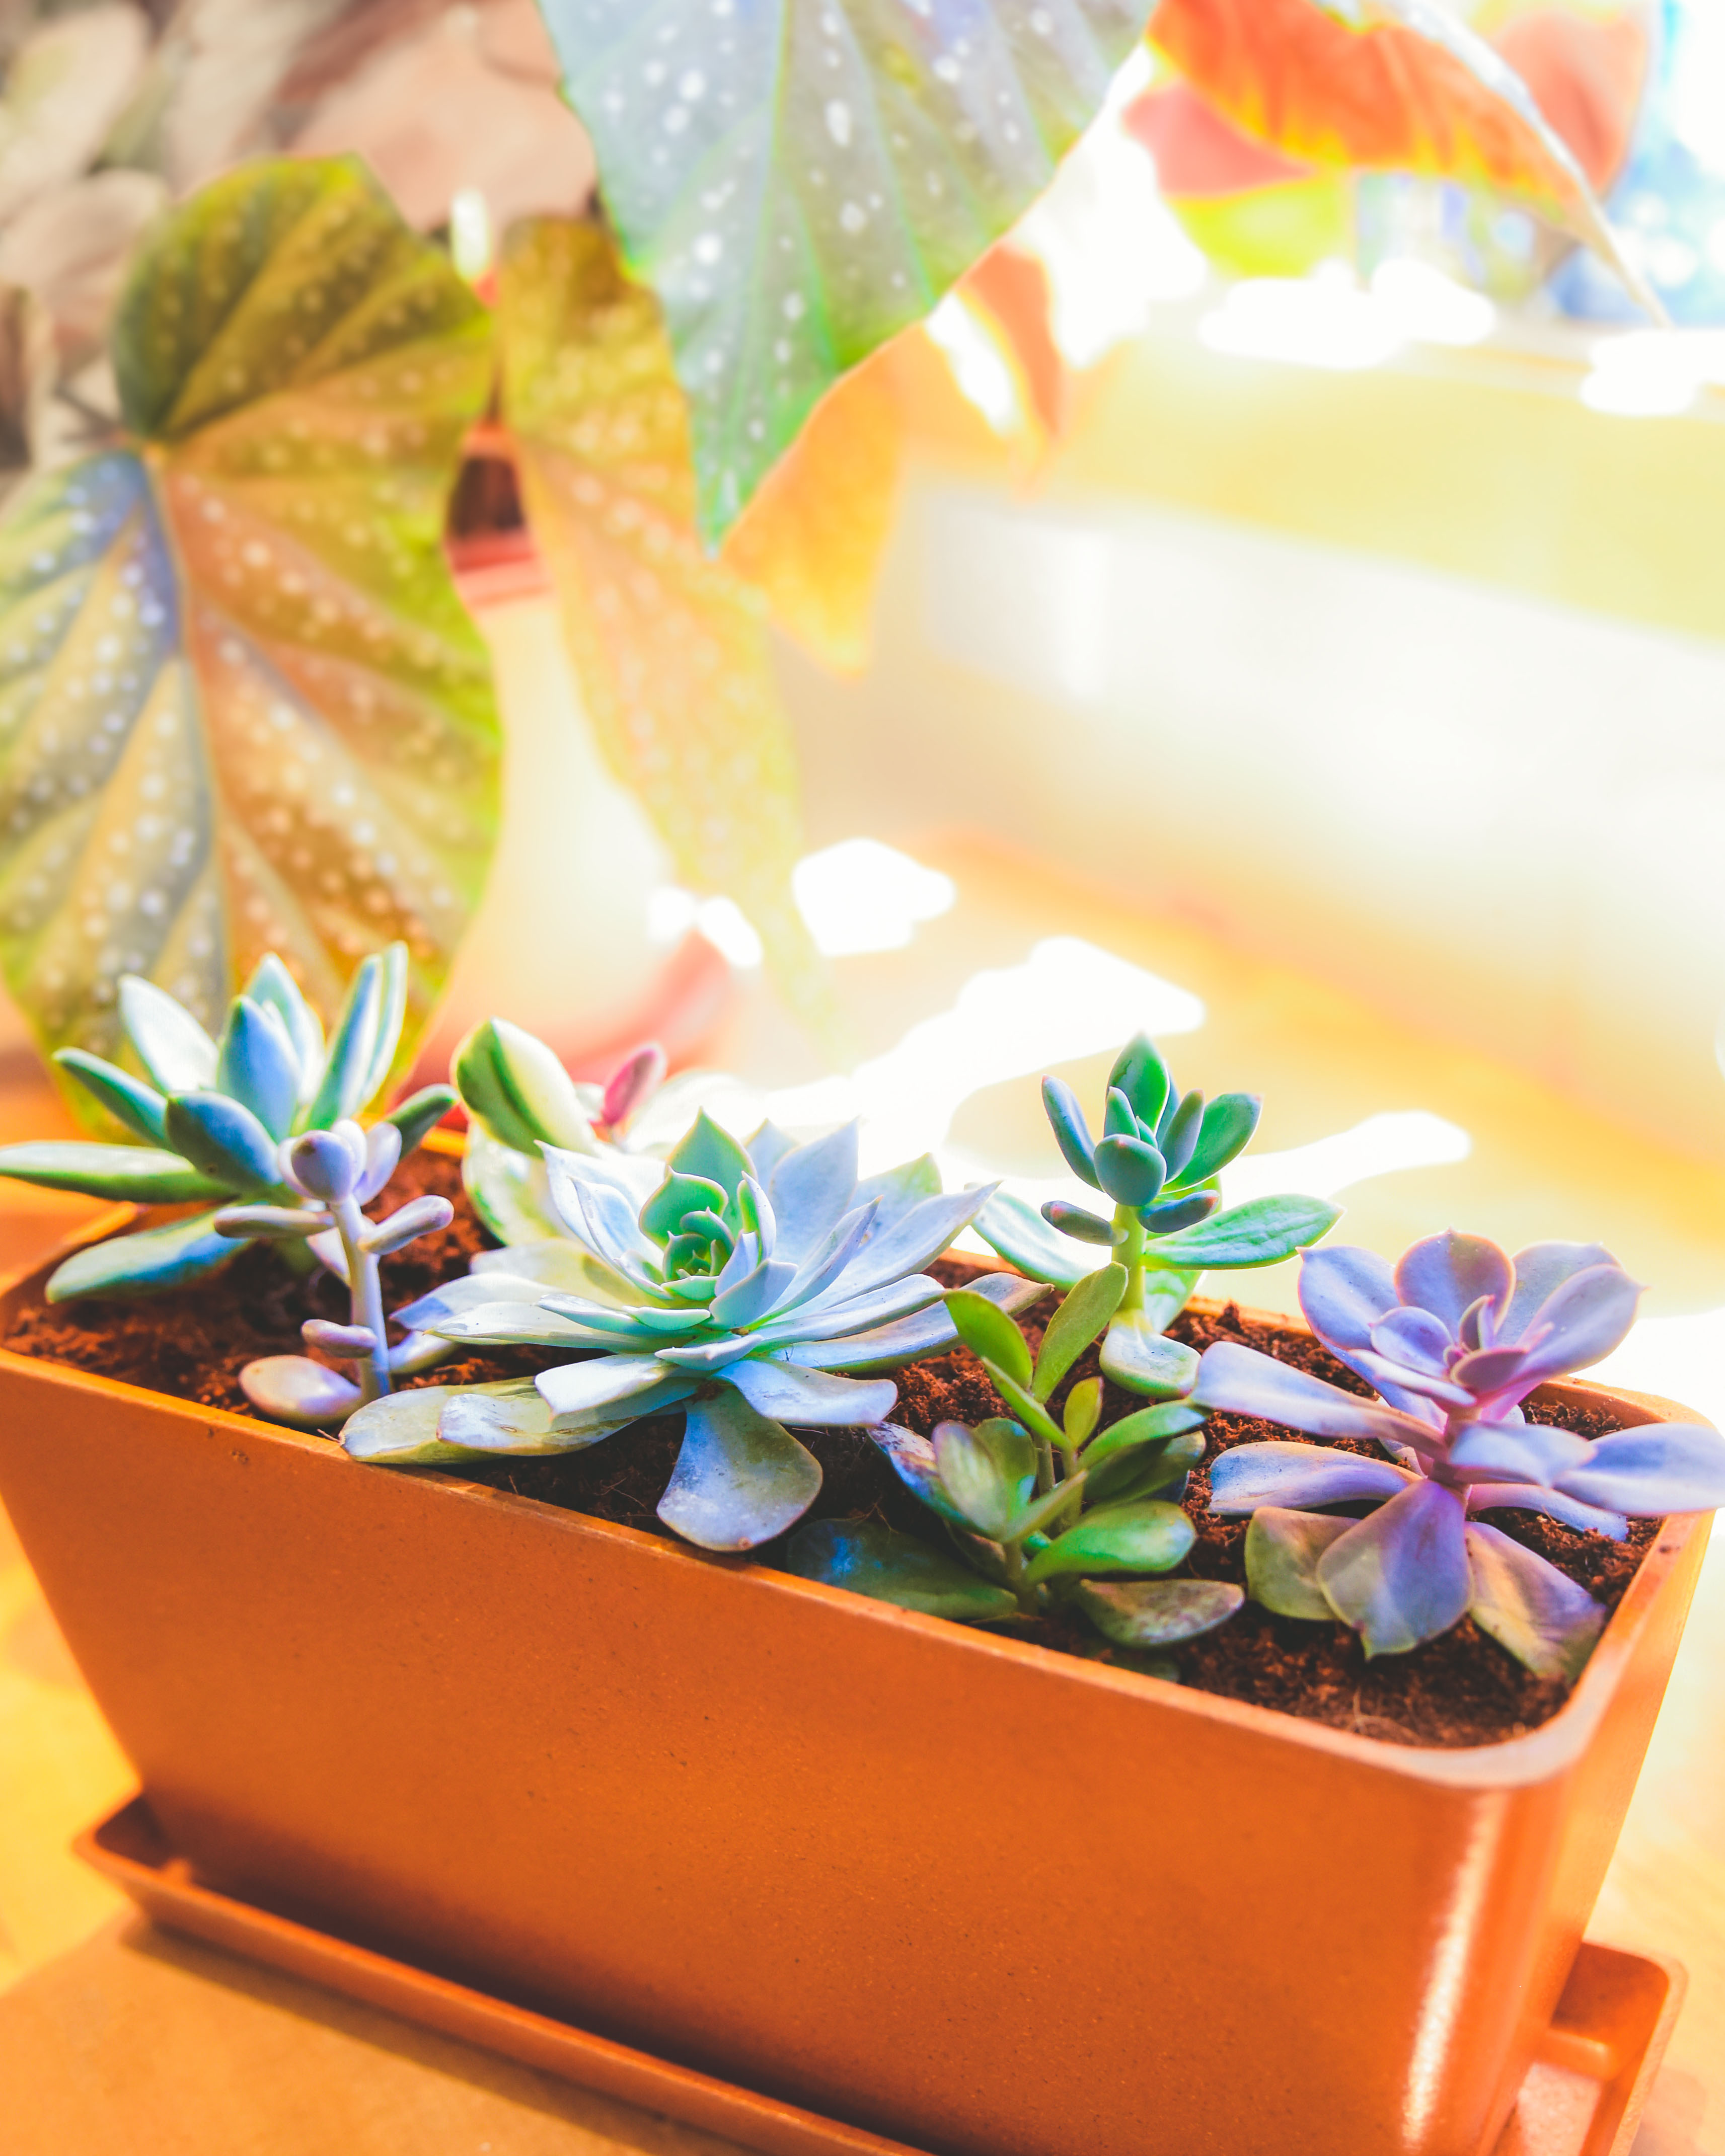 How-To: Choose Succulents to Plant Together